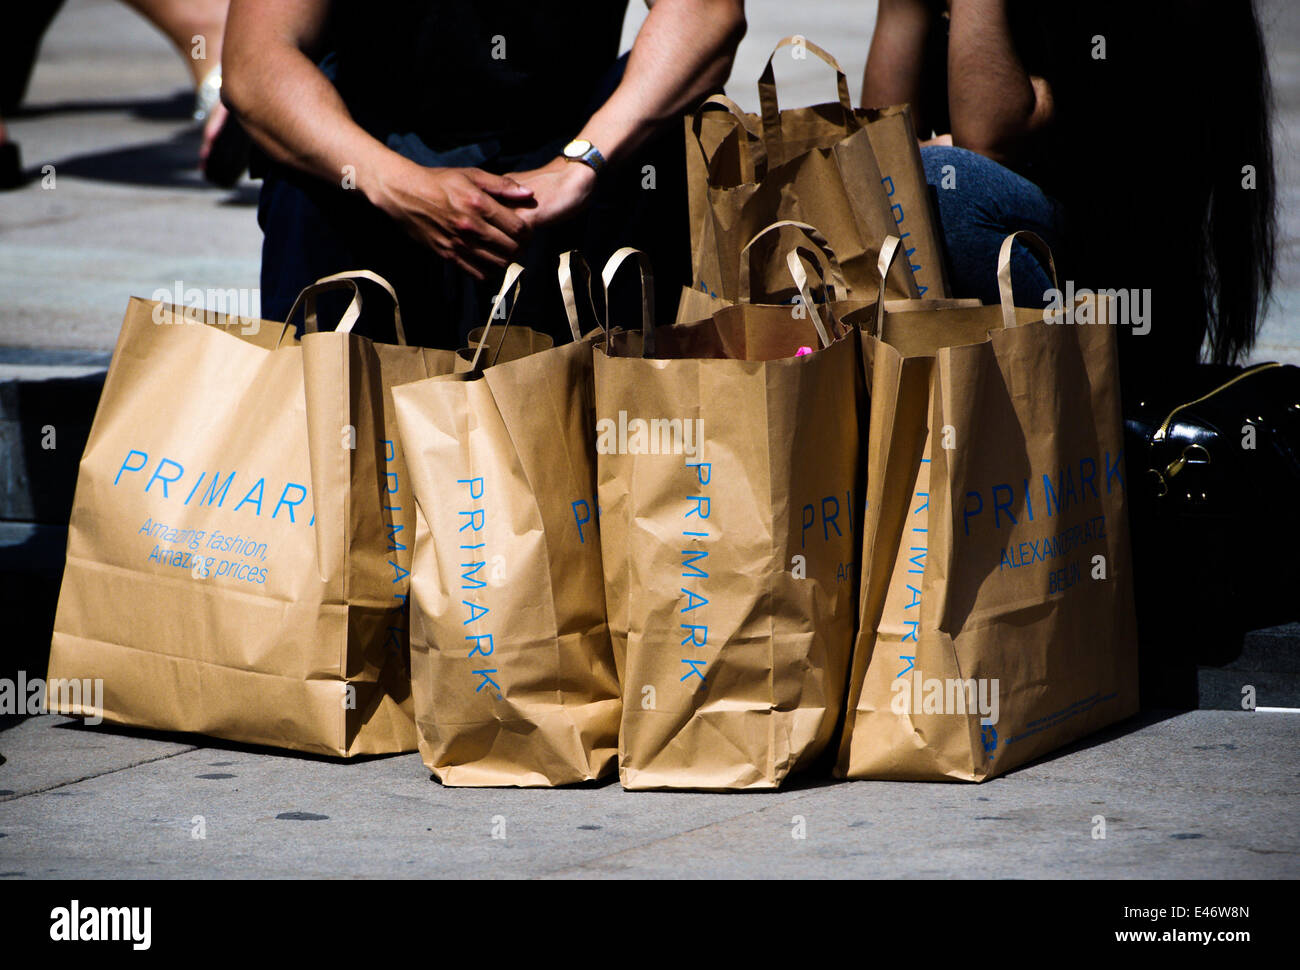 A store of the Irish textile discounter 'PRIMARK', on July 03, 2014 in Berlin, Germany. Photo: picture alliance - Stock Image